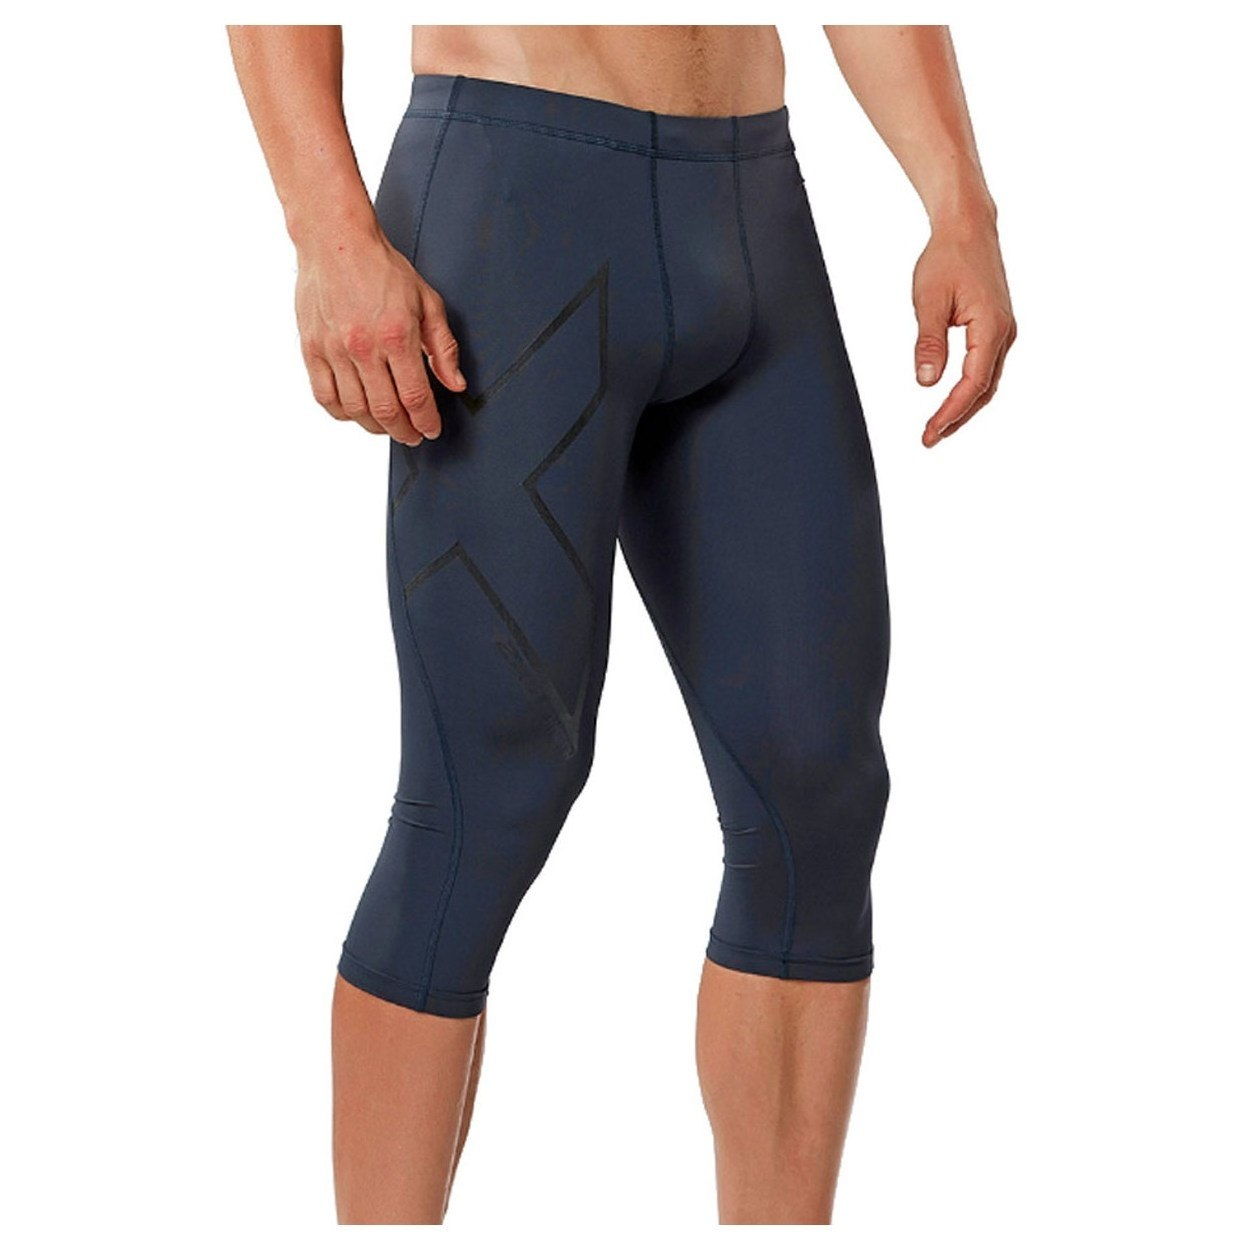 b972ad48e7772 2XU Men's Hyoptik Compression Three Quarter Tights Baselayer on Sale ...